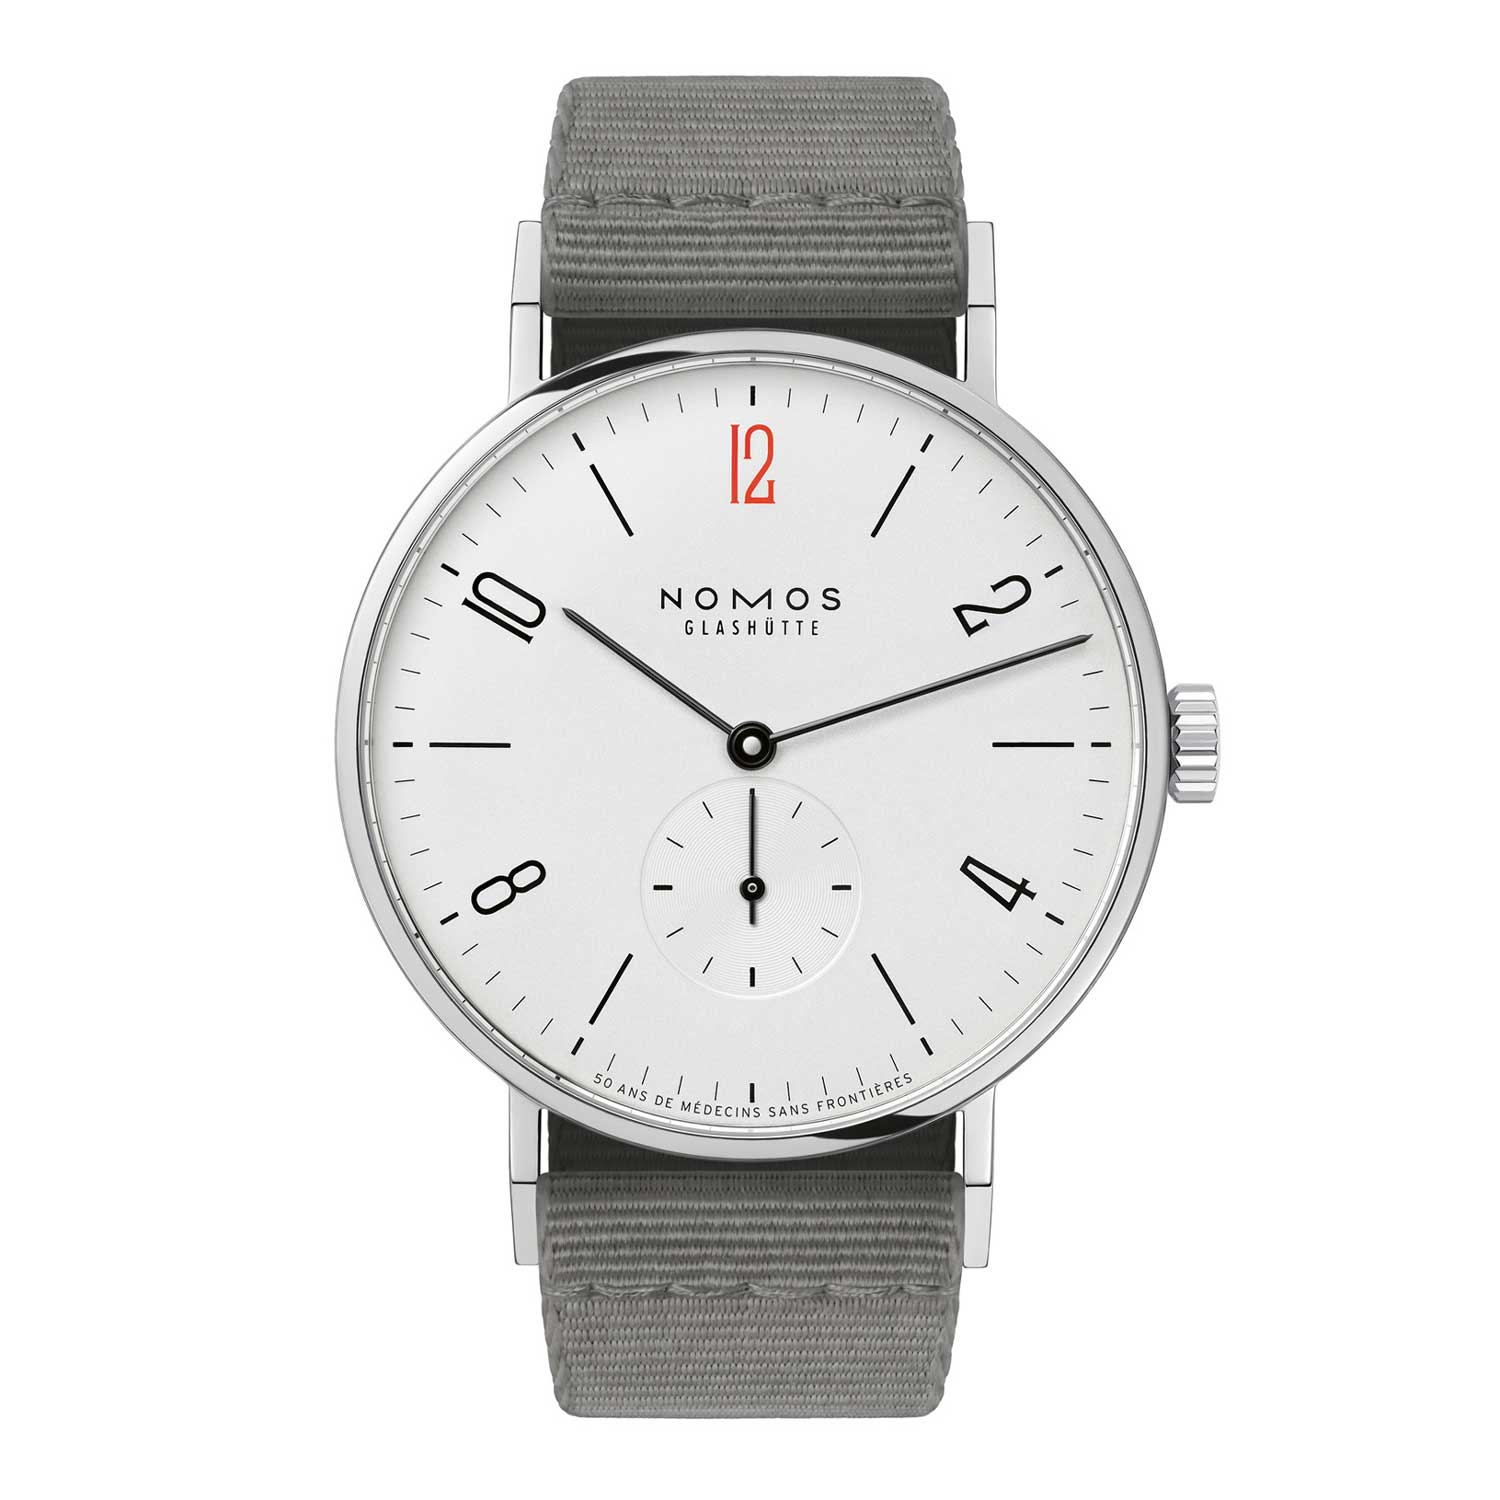 The polished steel case has a diameter of 37.5mm and a slim height of just 6.7mm.